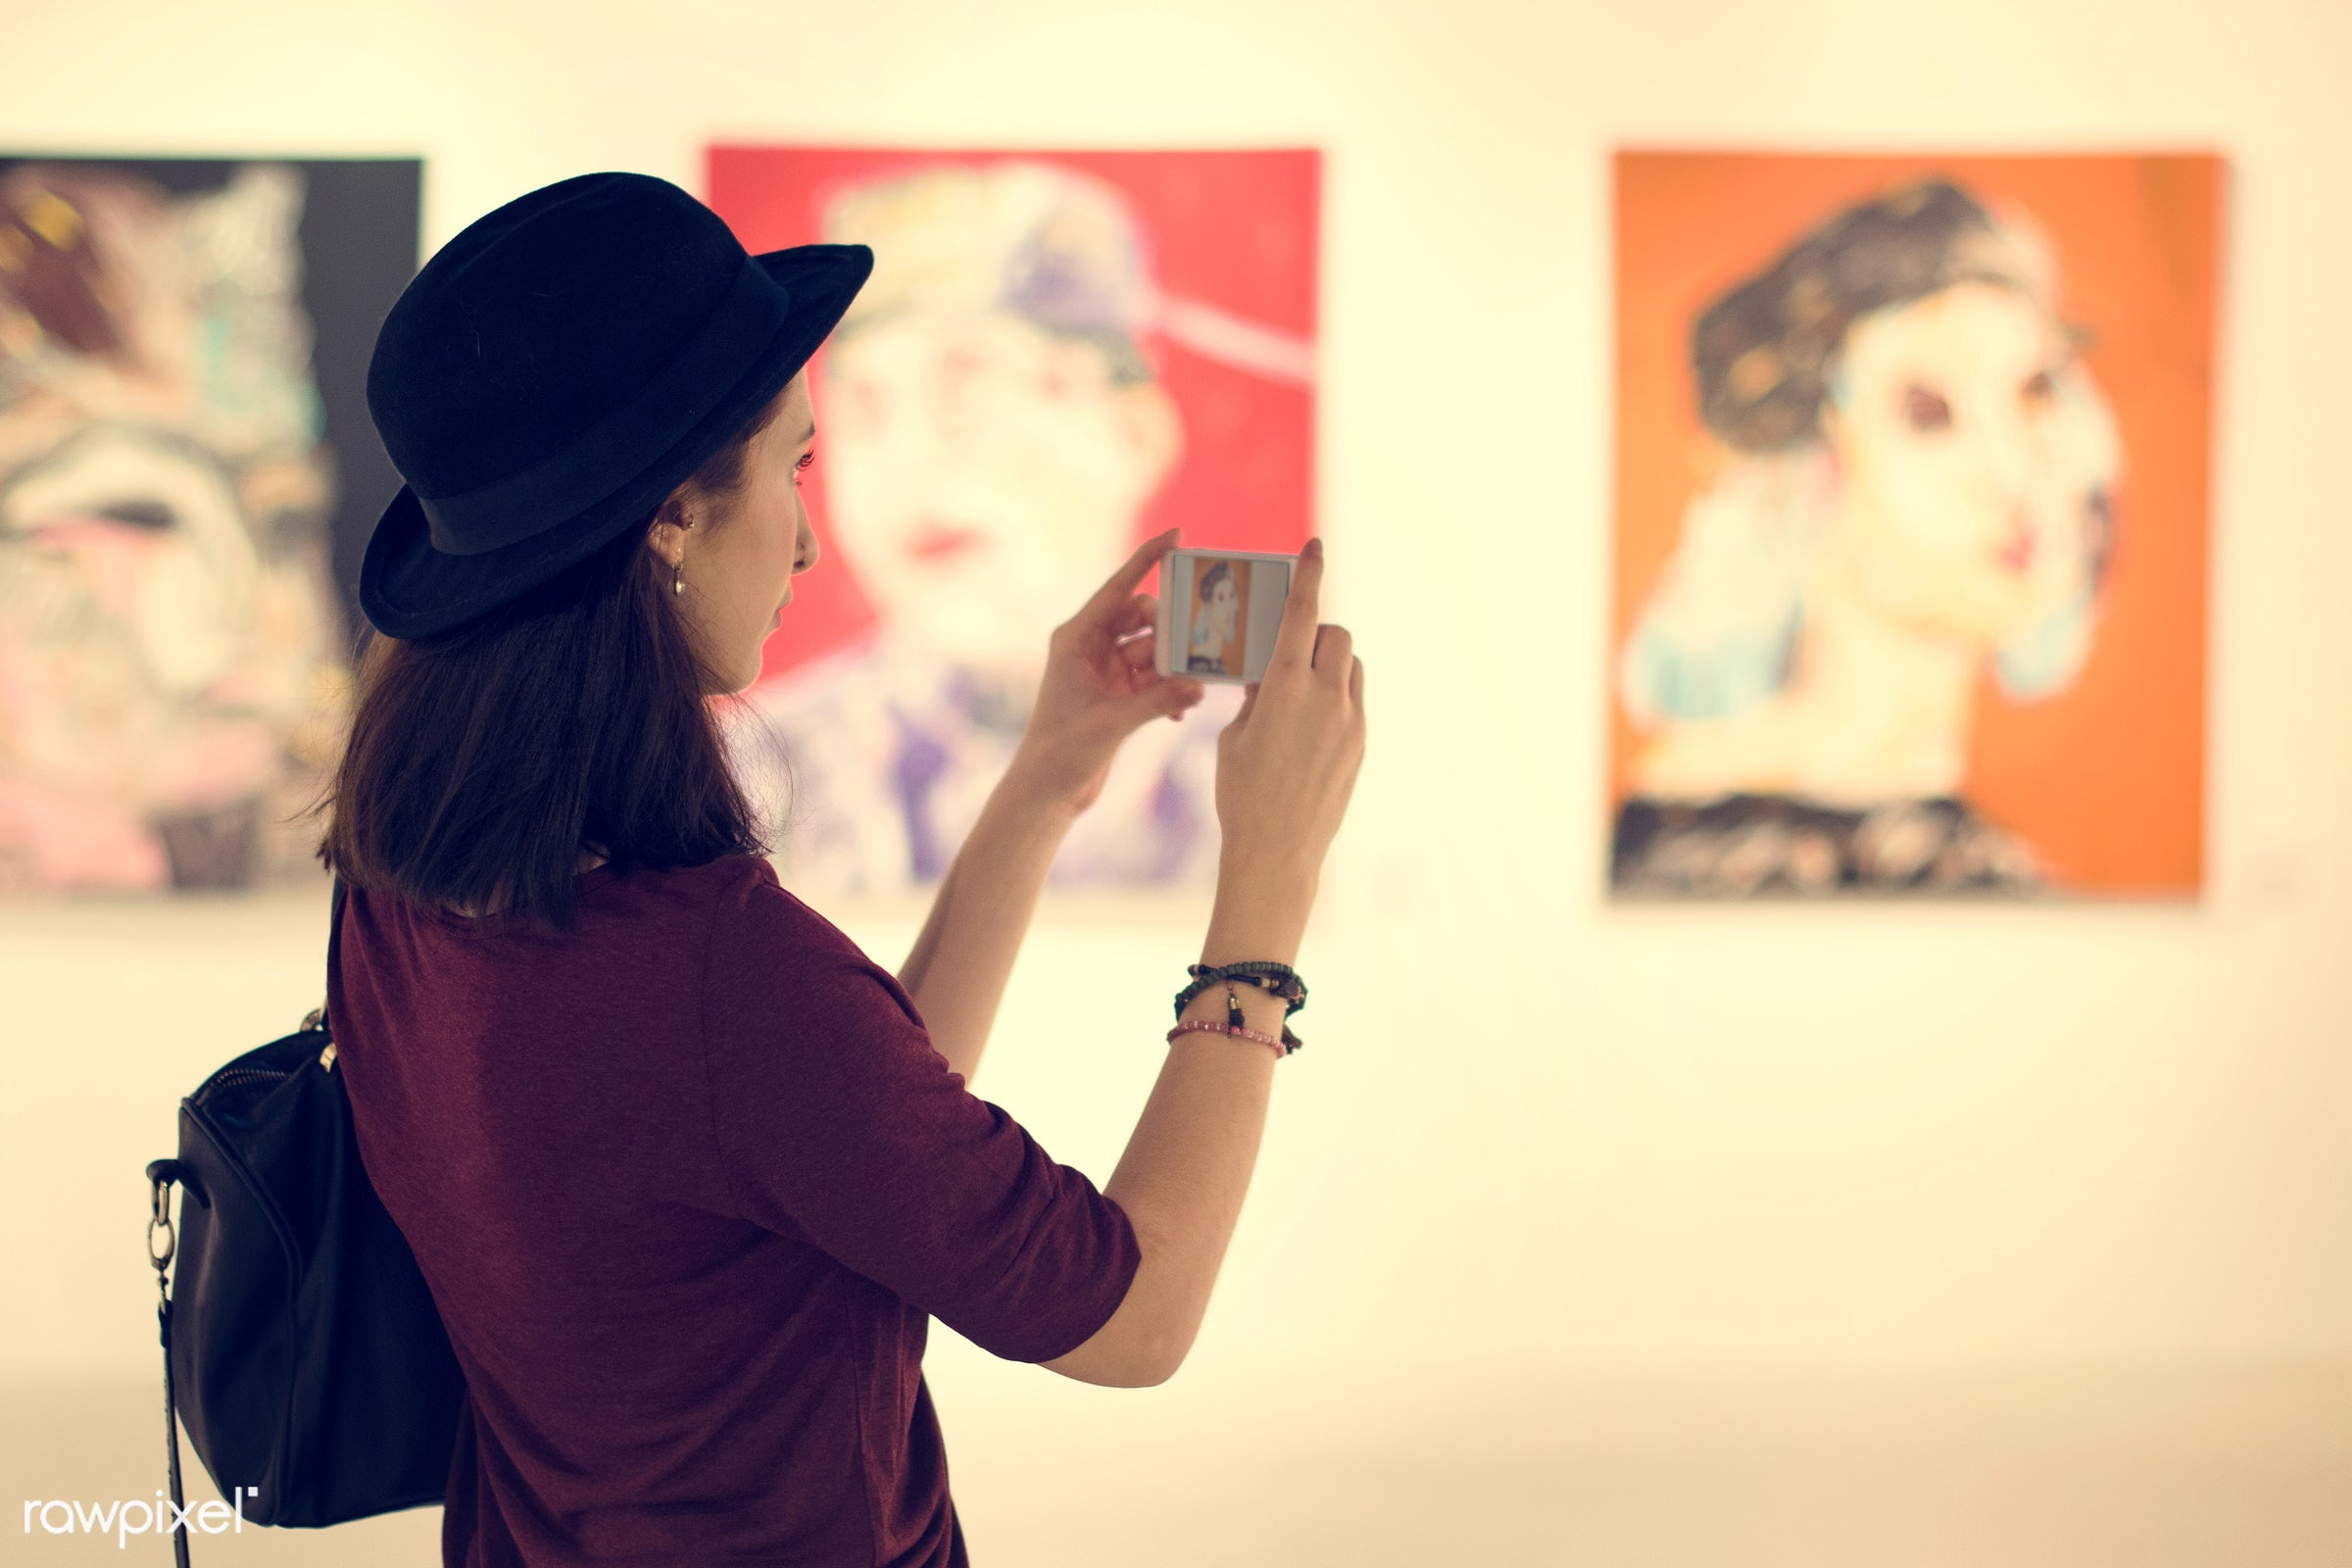 museum, activity, admiration, art, artist, artistic, artwork, attractive, beautiful, camera, candid, casual, collection,...